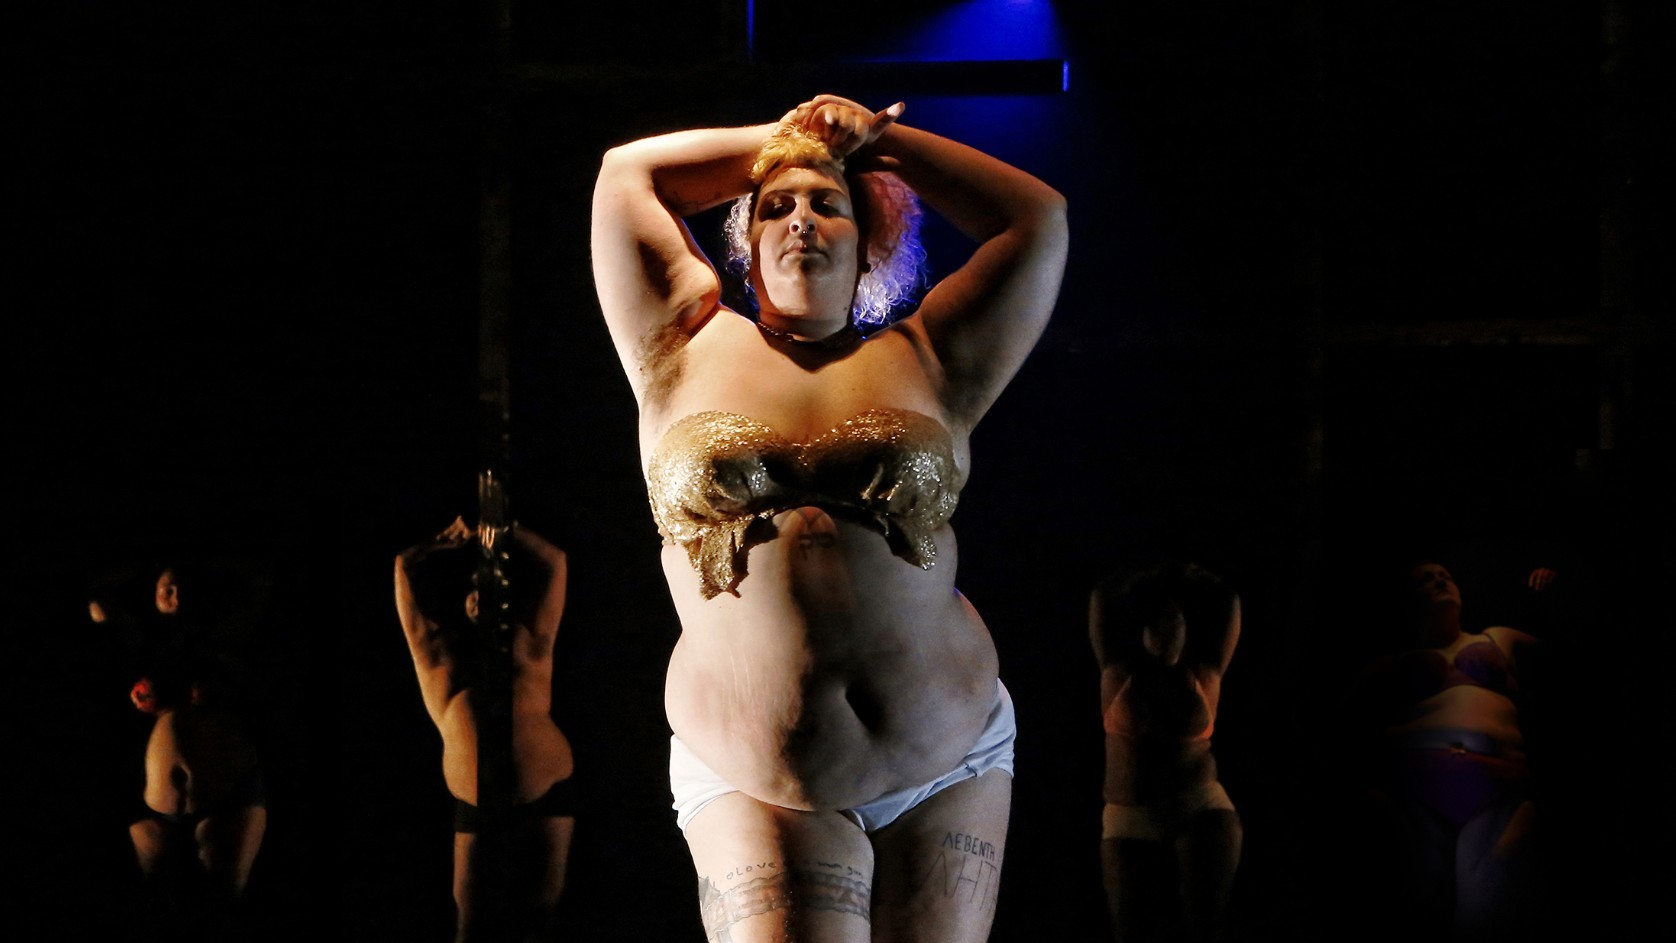 A performer wearing white underwear and a gold decorated strapless bra looks defiantly at the camera, their arms raised above their head.